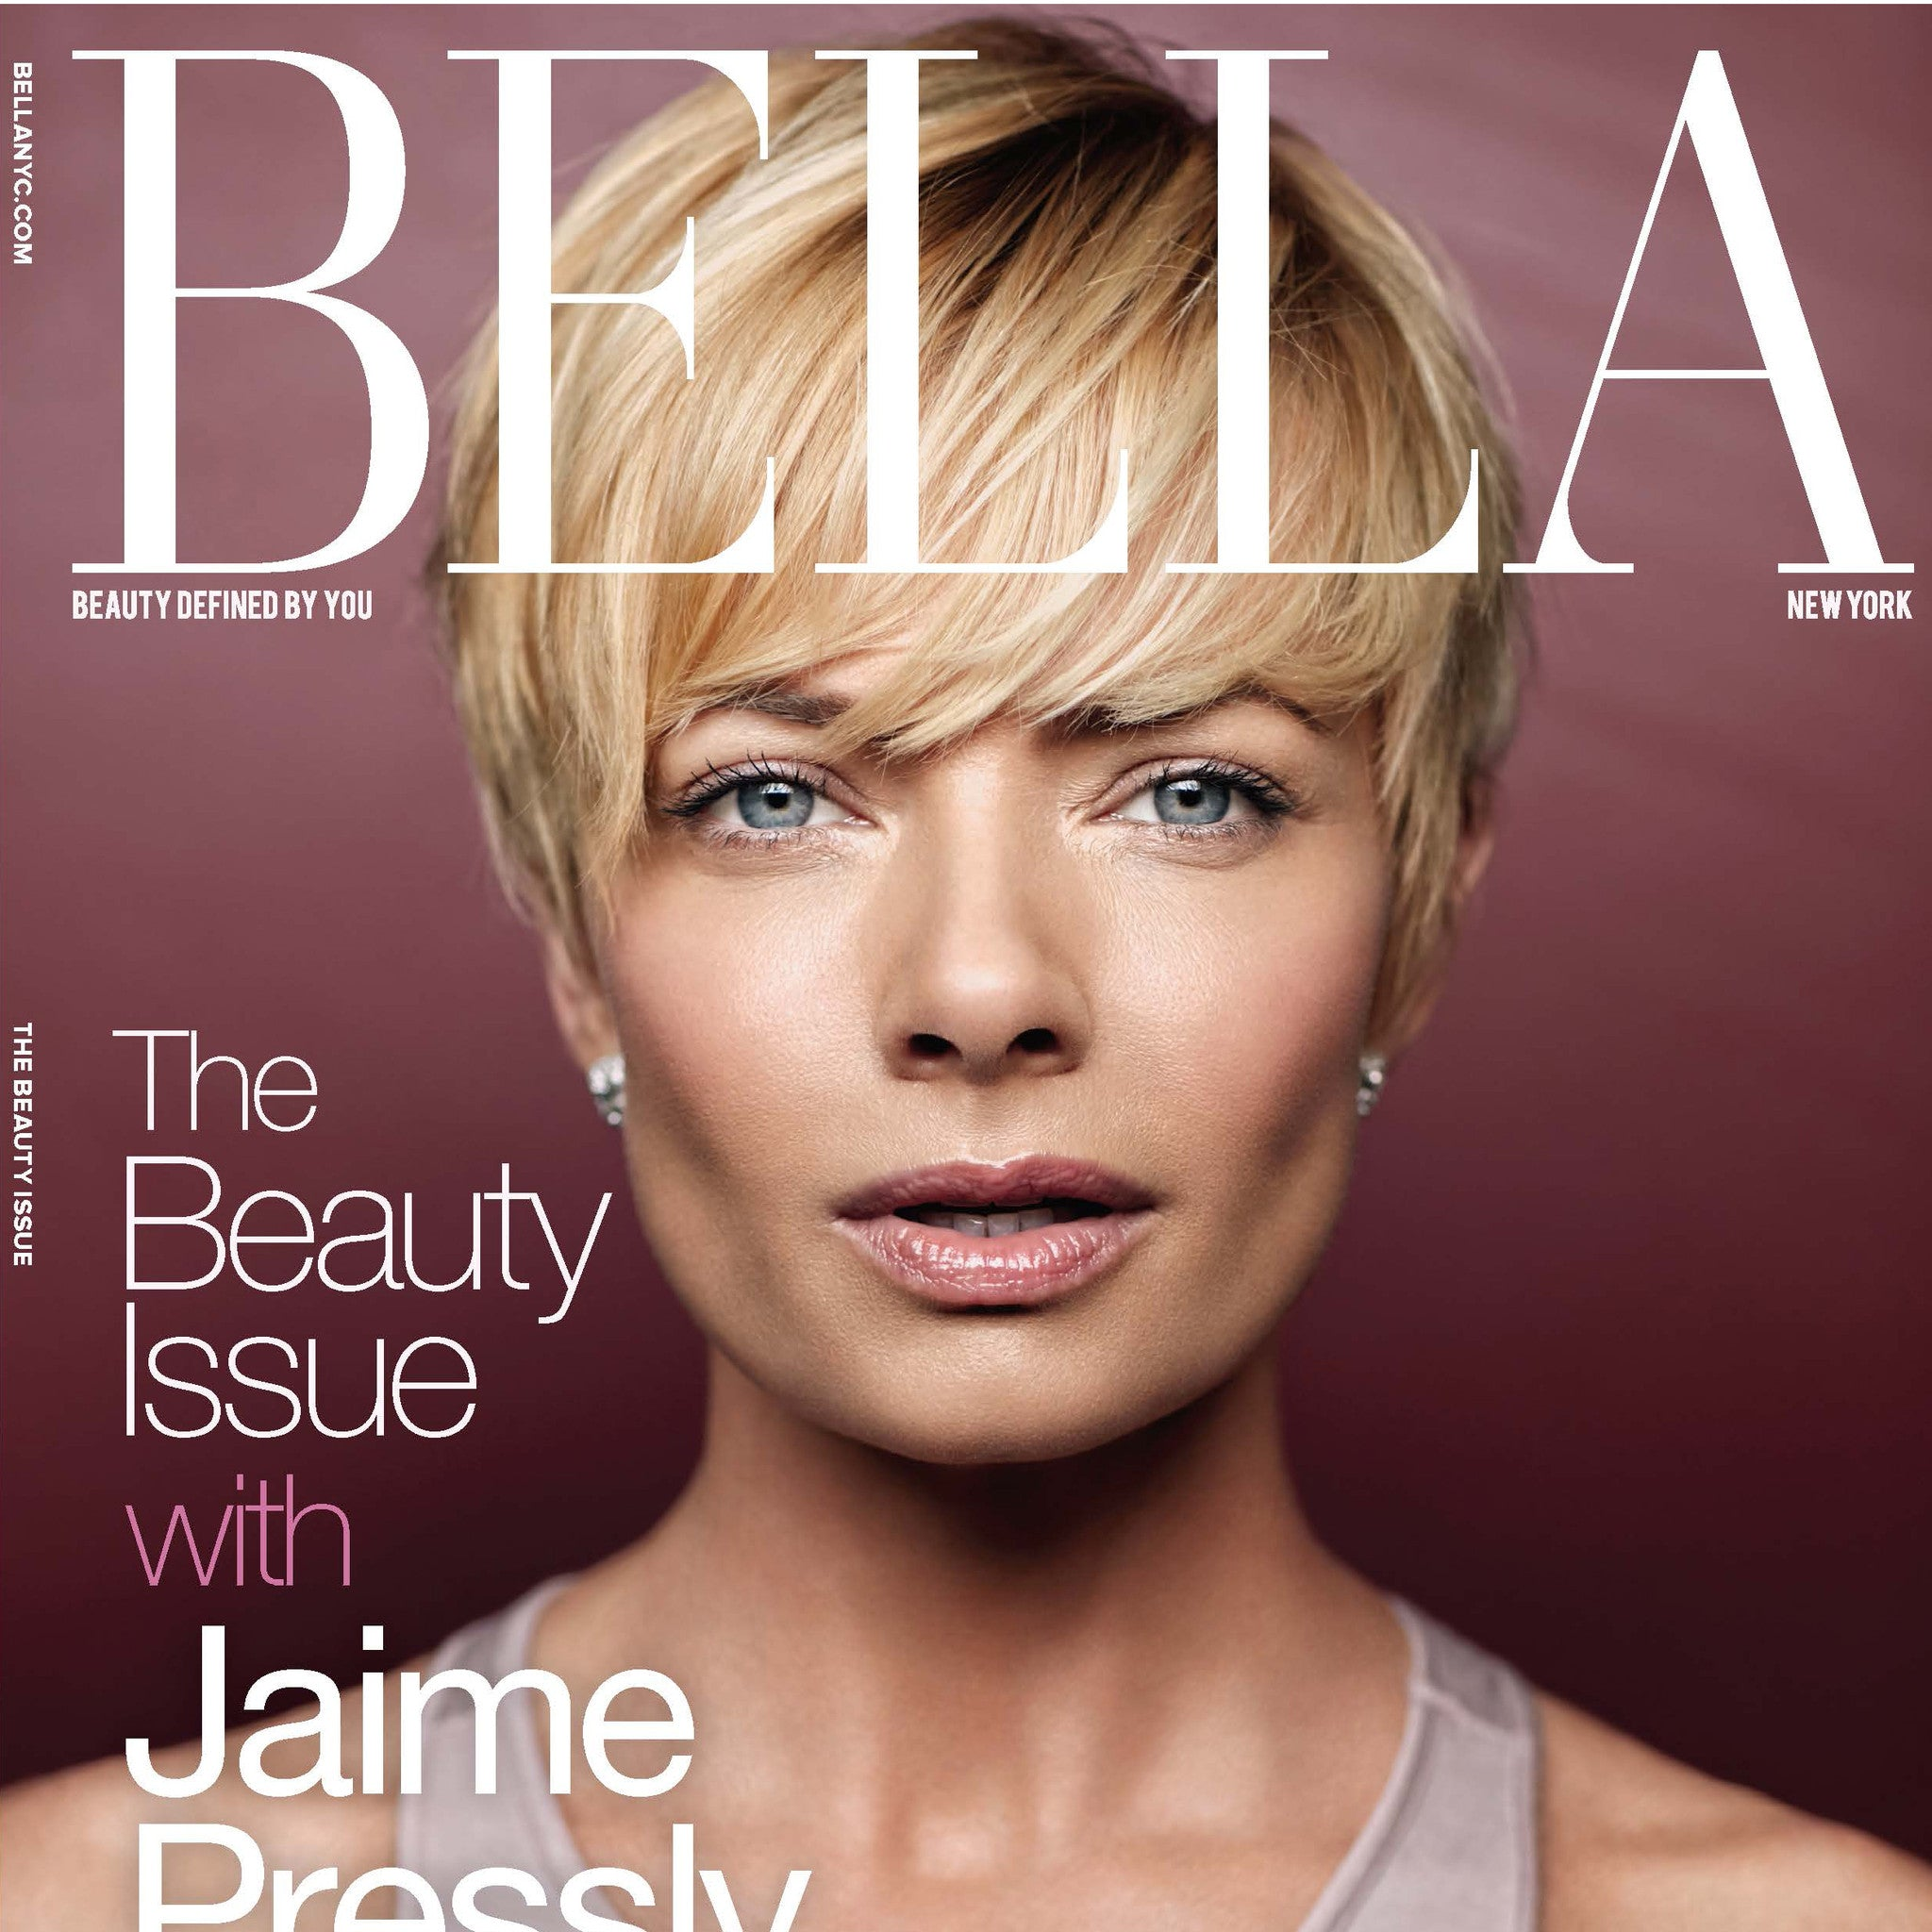 JUST IN: BLNDN FEATURED IN MAY ISSUE OF BELLA NYC